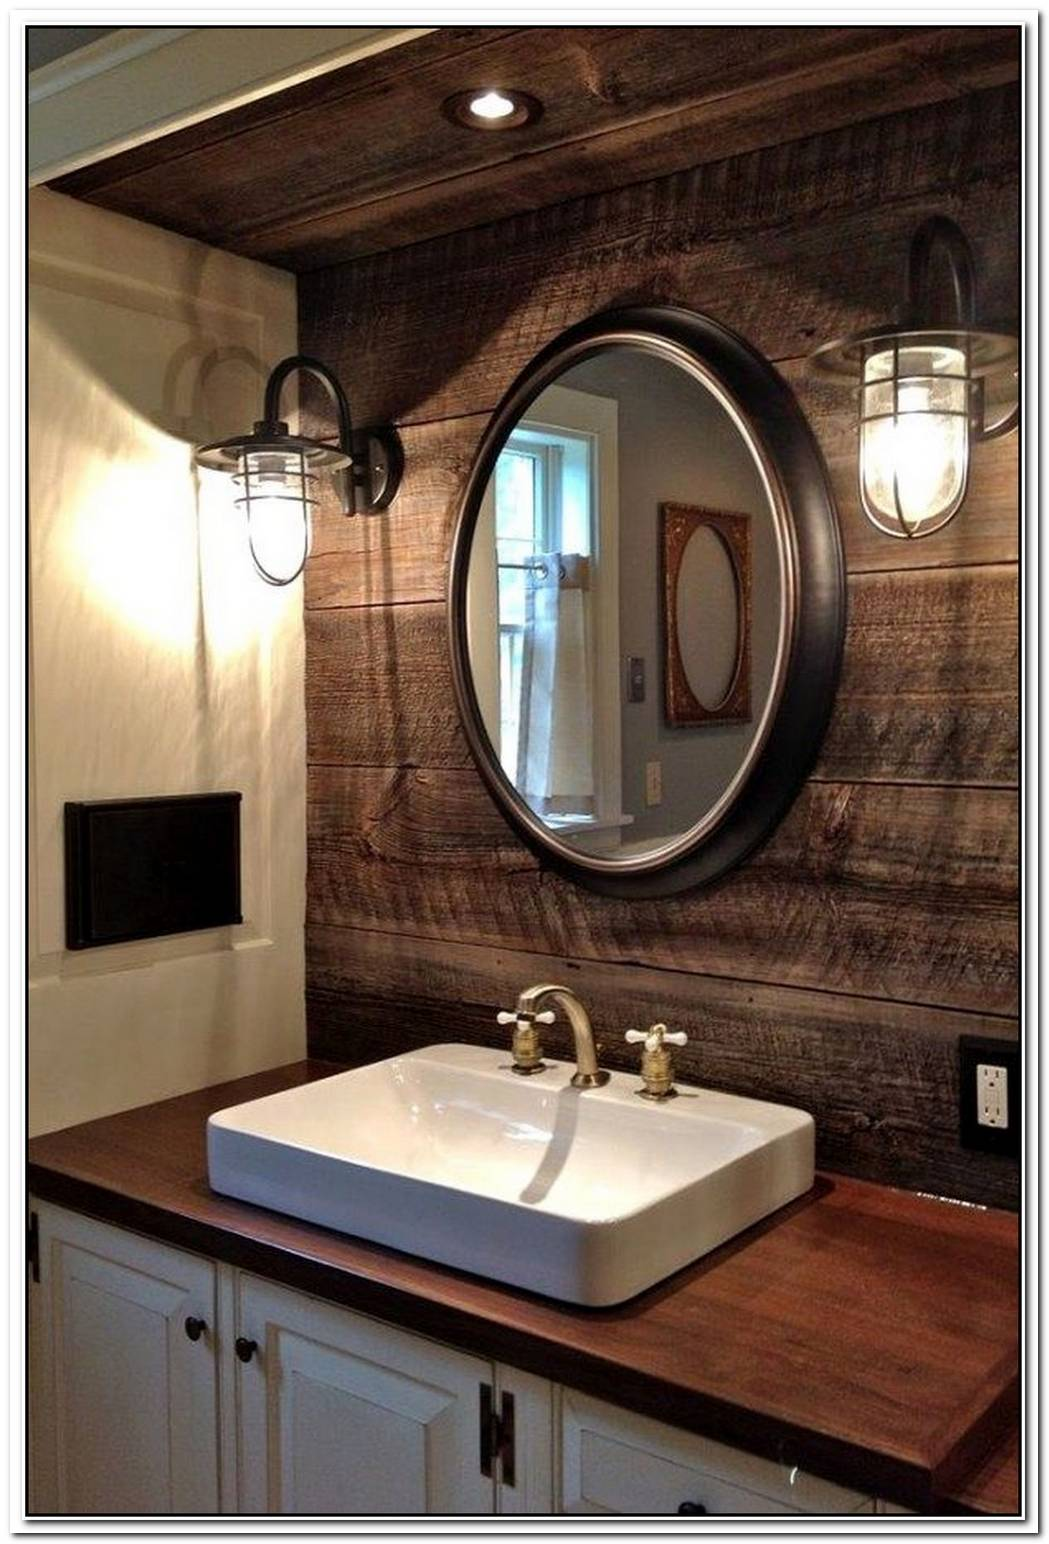 10 Stunning Industrial Bathroom Ideas